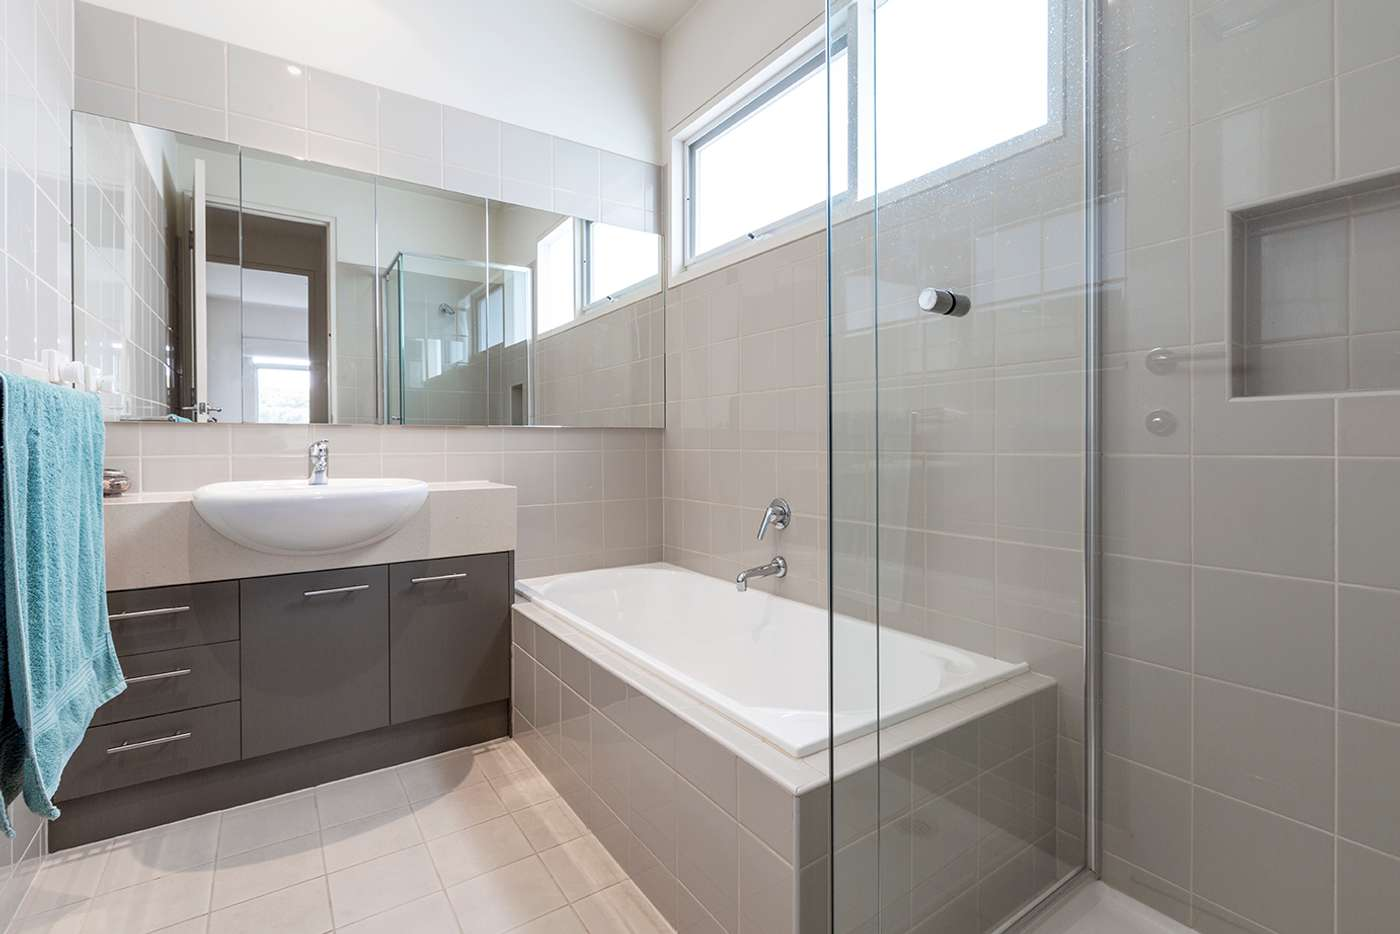 Sixth view of Homely house listing, 5 Raynes Street, Caulfield South VIC 3162